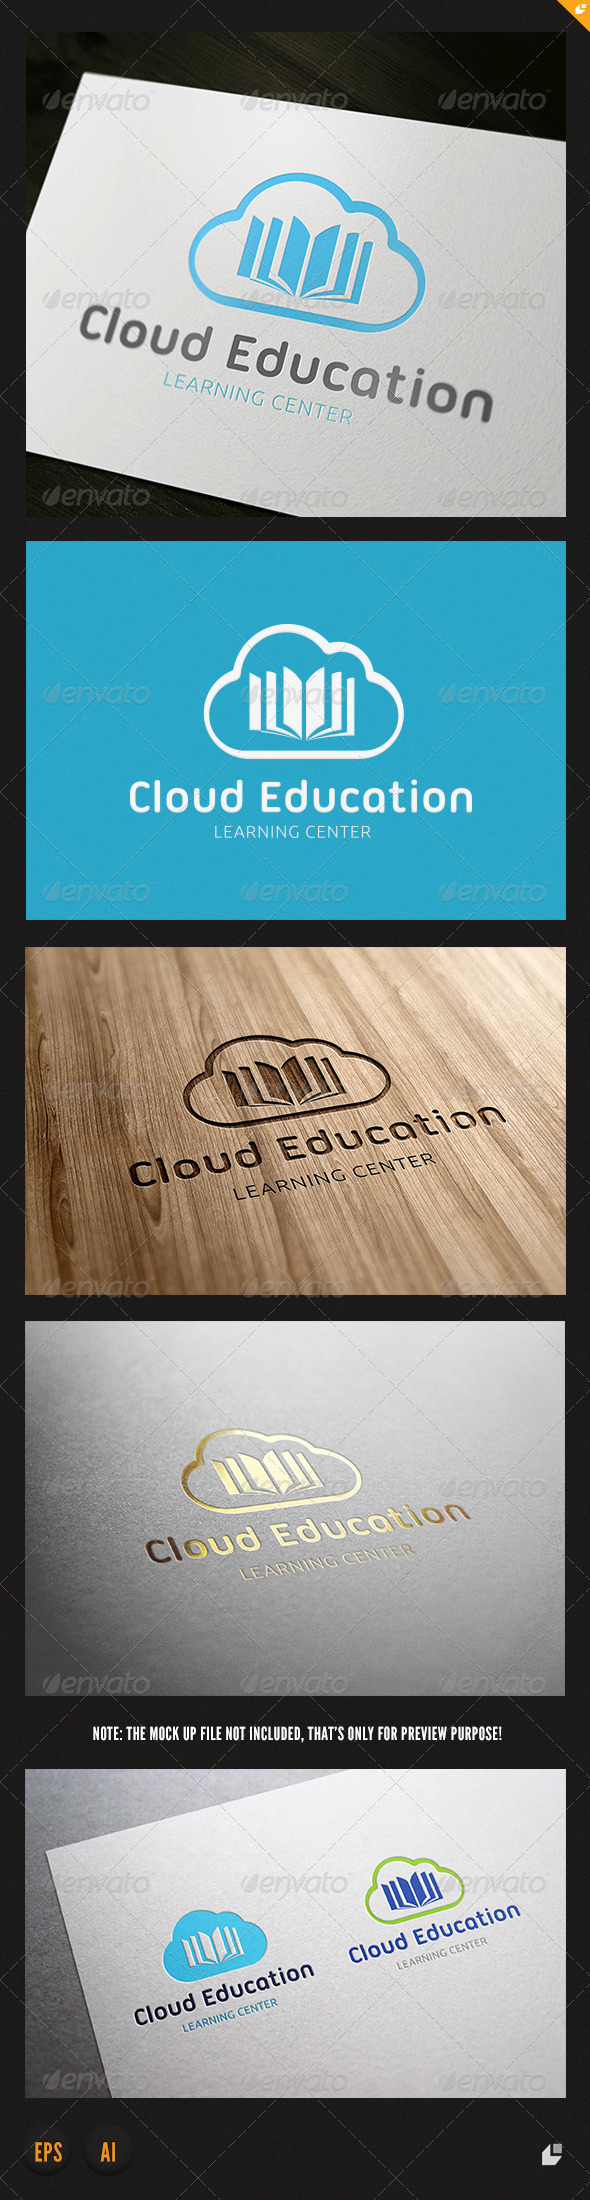 Cloud Education Logo